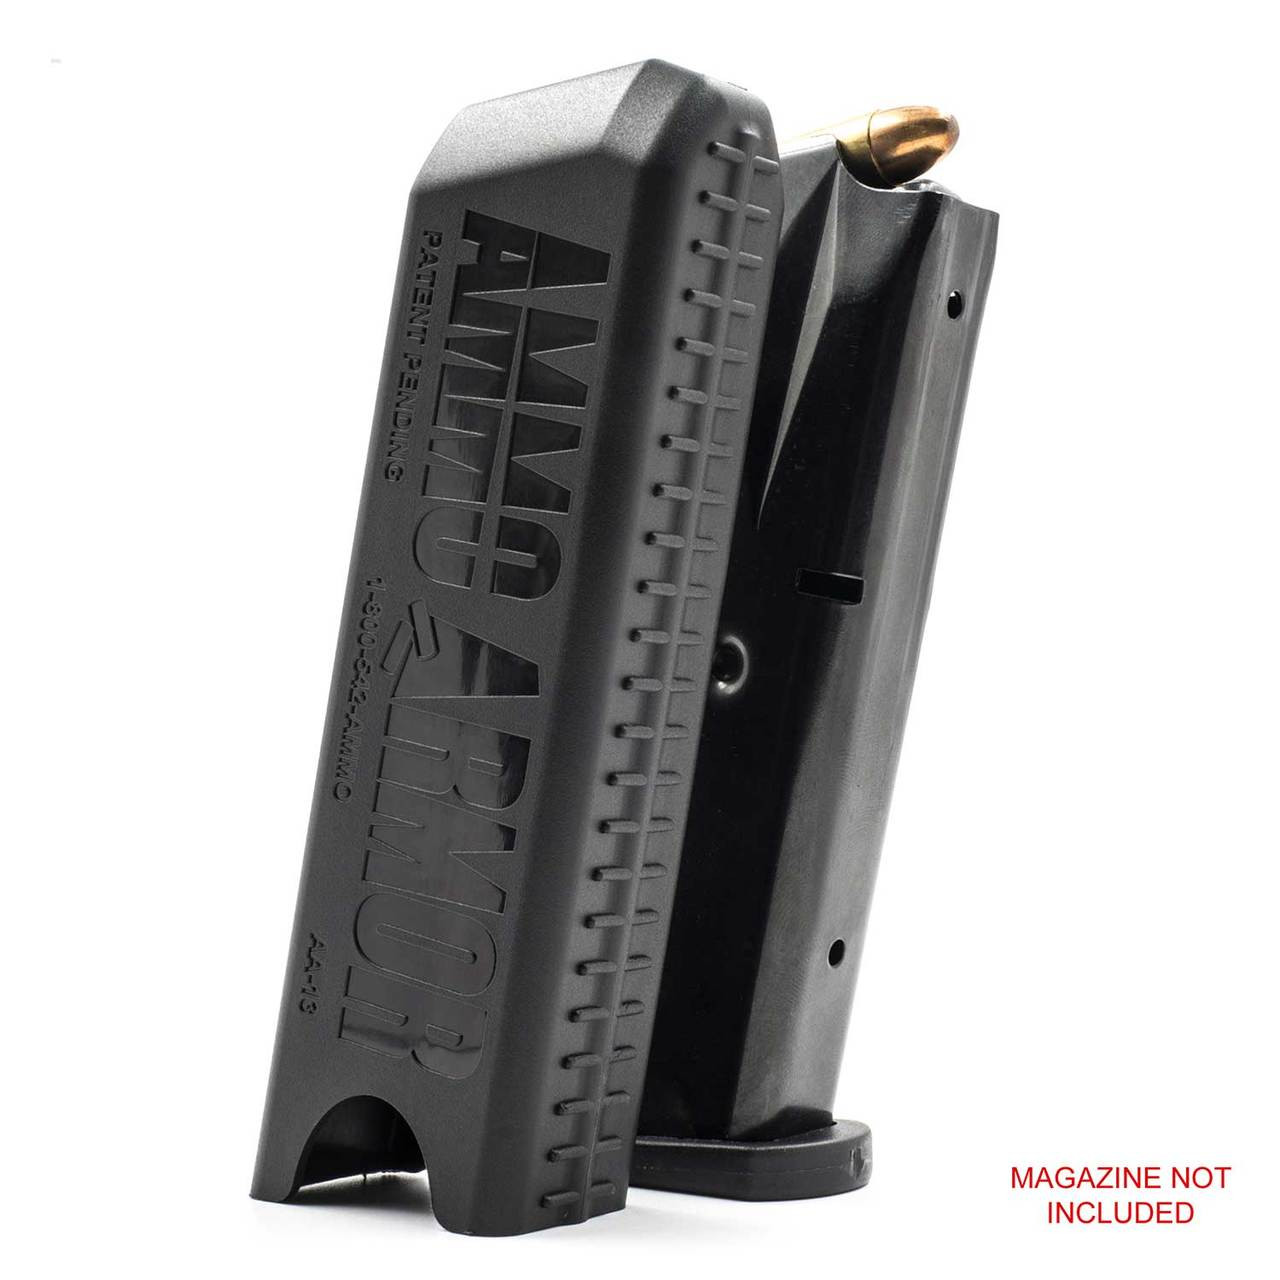 Ruger P93 Magazine Protector